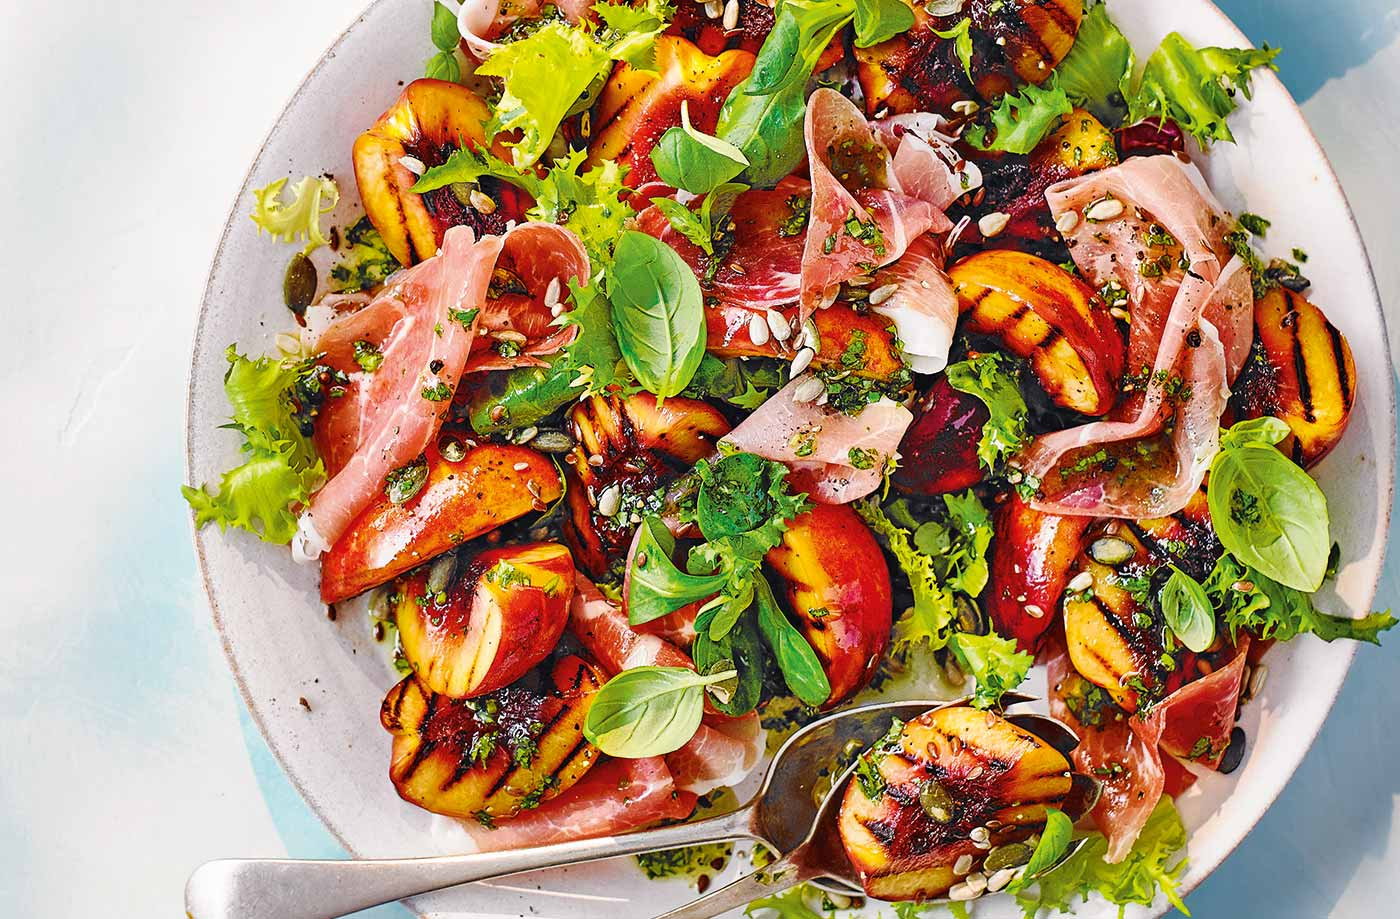 Griddled nectarine and ham salad with basil dressing recipe